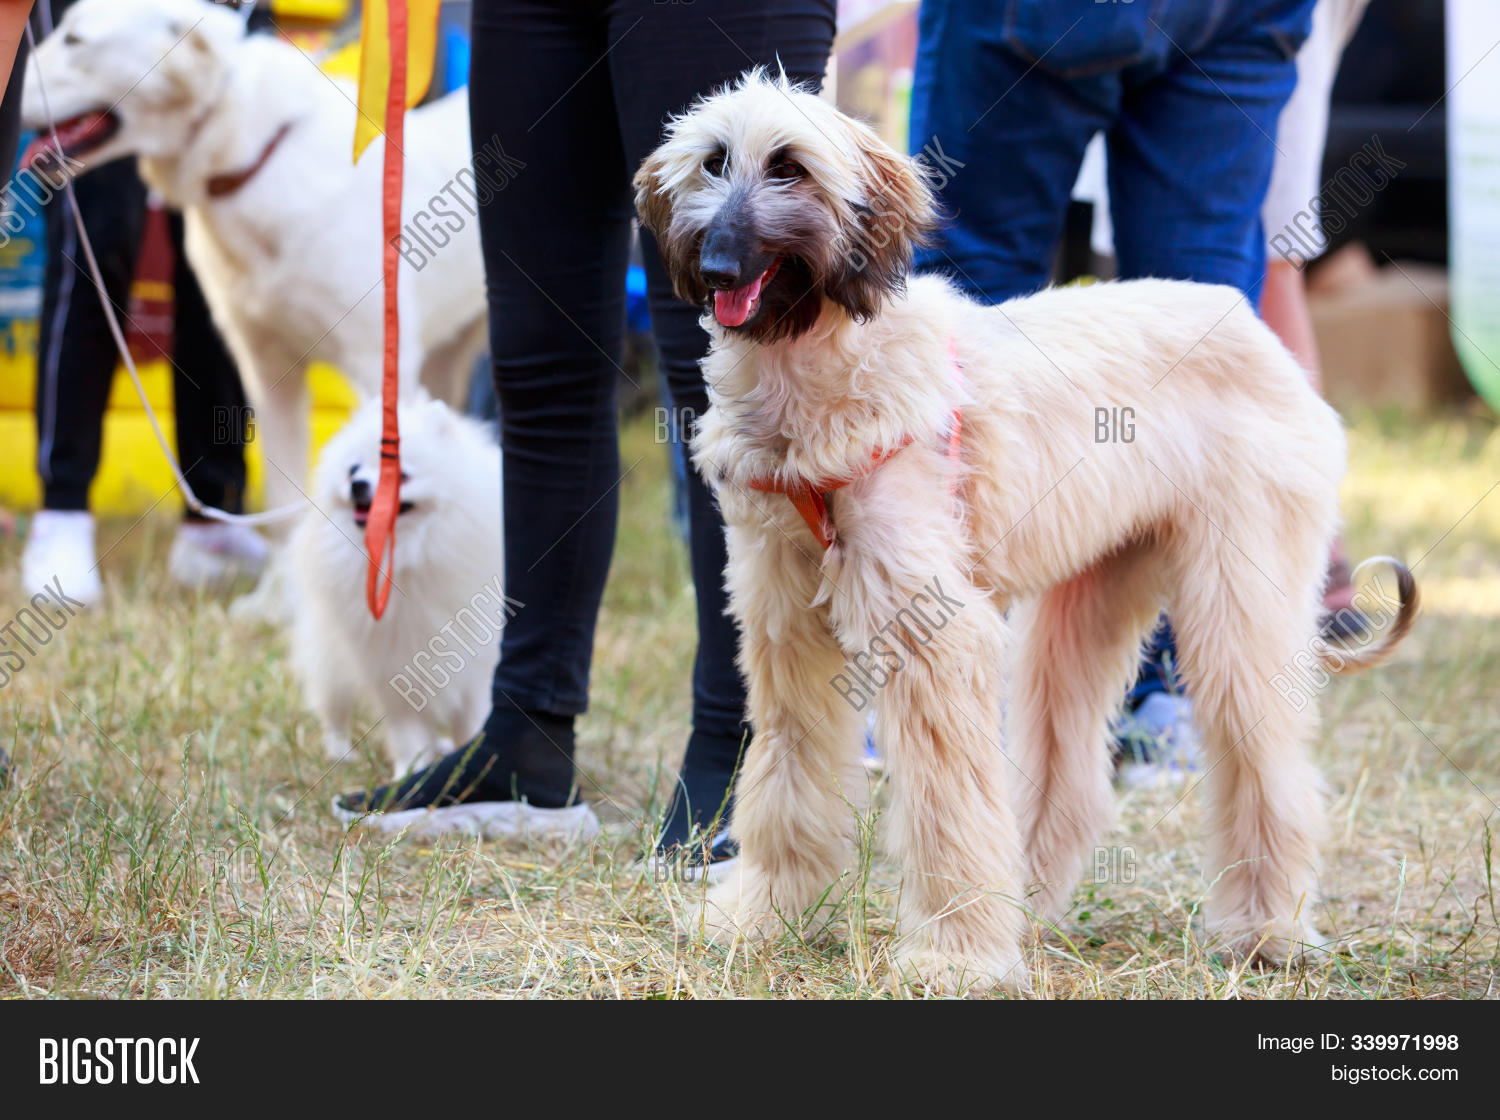 Afghan,adorable,animal,background,beautiful,beige,big,black,breed,brown,canine,carnivore,companion,curly,cute,dog,doggy,domestic,grass,green,happy,hound,lactic,long-haired,looking,mammal,nature,outdoor,outside,park,pedigree,pedigreed,pet,portrait,pup,purebred,stand,wildlife